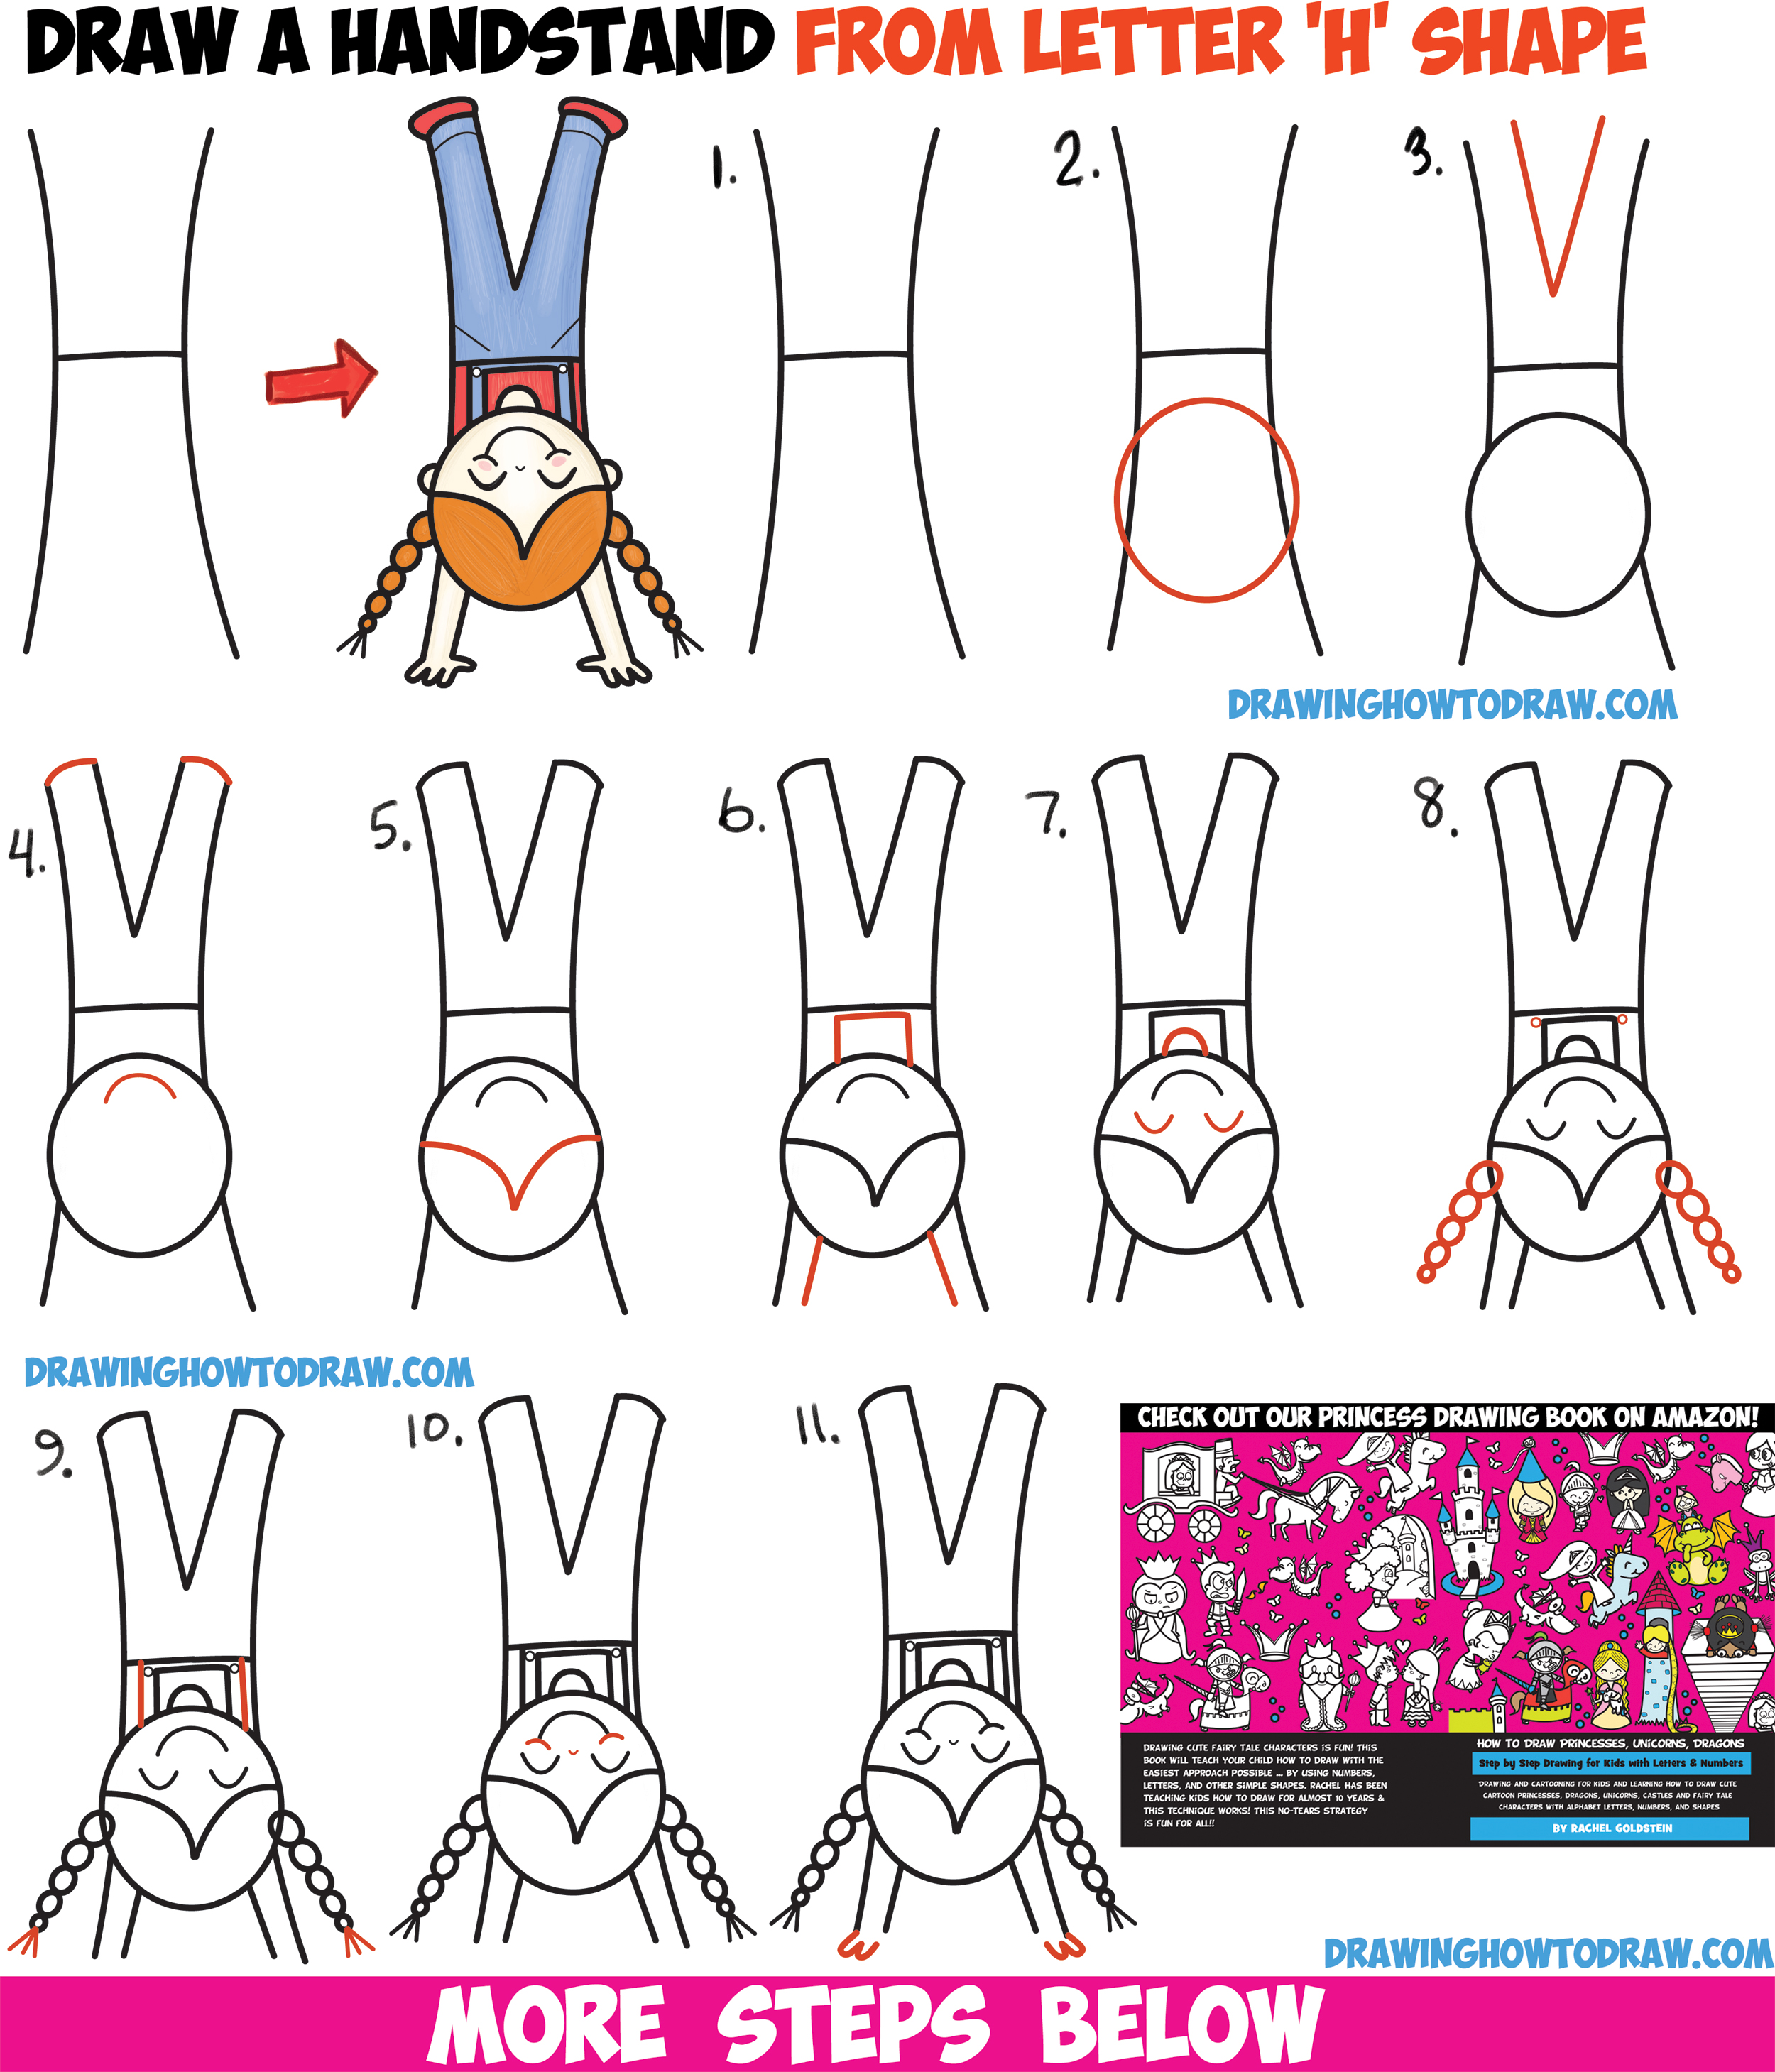 How To Draw A Cute Cartoon Kawaii Girl Doing Handstand From The Letter H